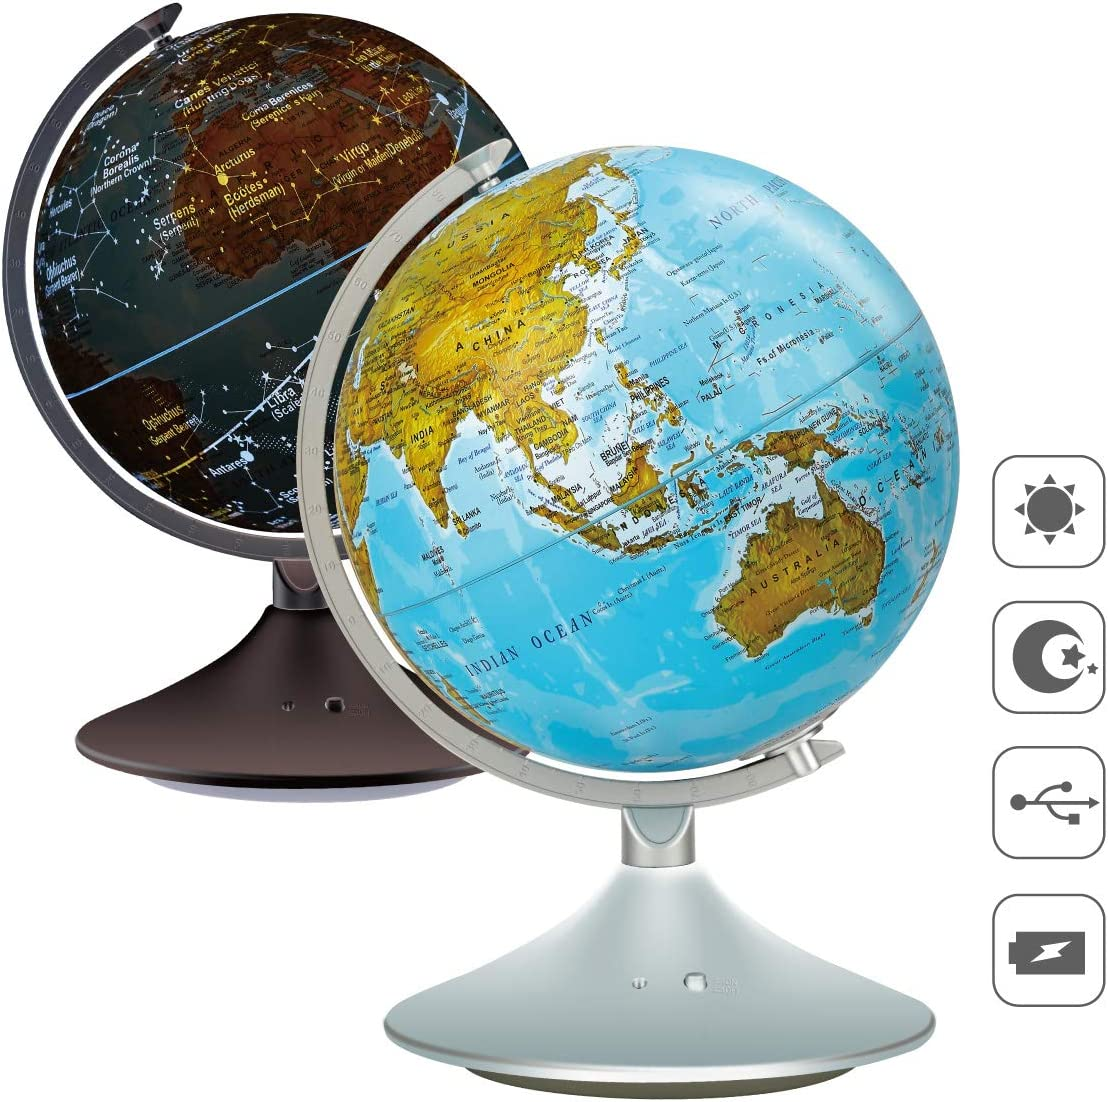 VIDAR 9'' Cartography Illuminated World Globe,Desktop LED Star Constellation Globe & Nightlight with Steel Stand,Exploration Earth Globe for Kids Learning Demo Home Office Desk Decoration